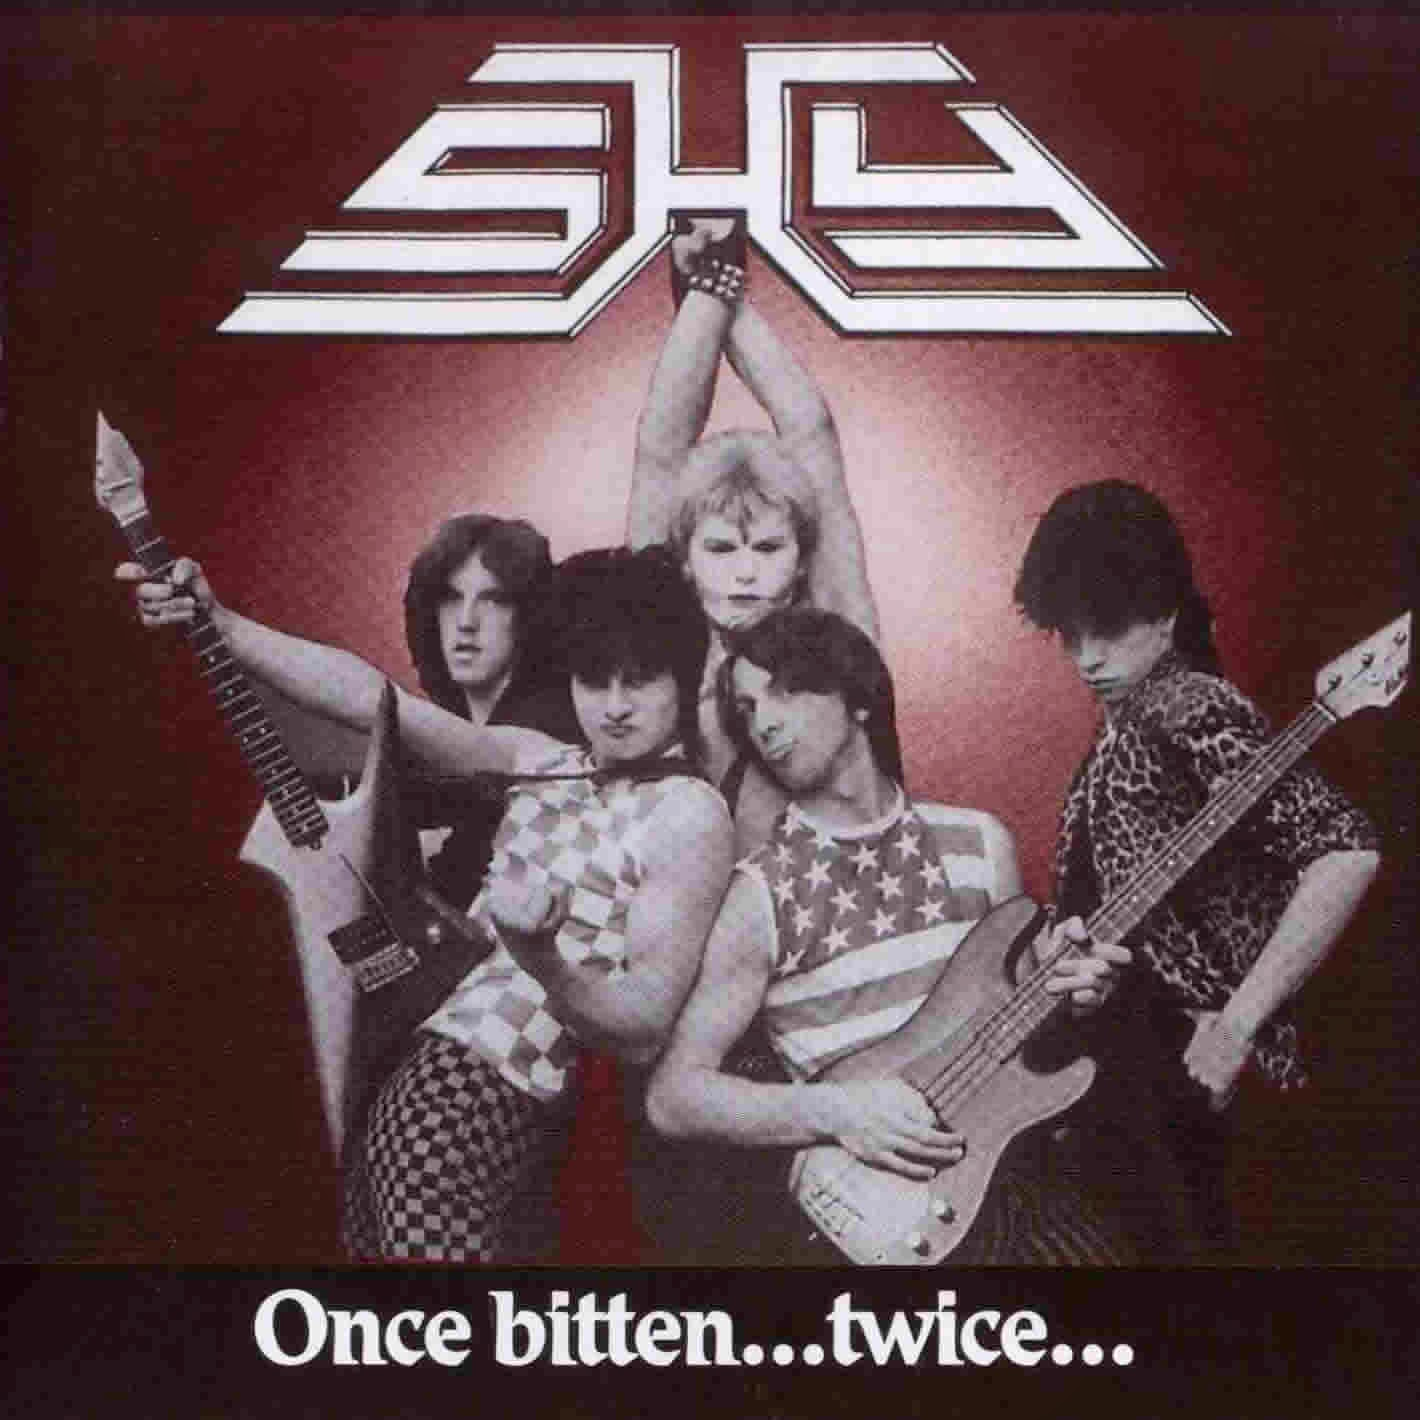 Shy Once bitten twice shy 1983 aor melodic rock music blgospot albums bands